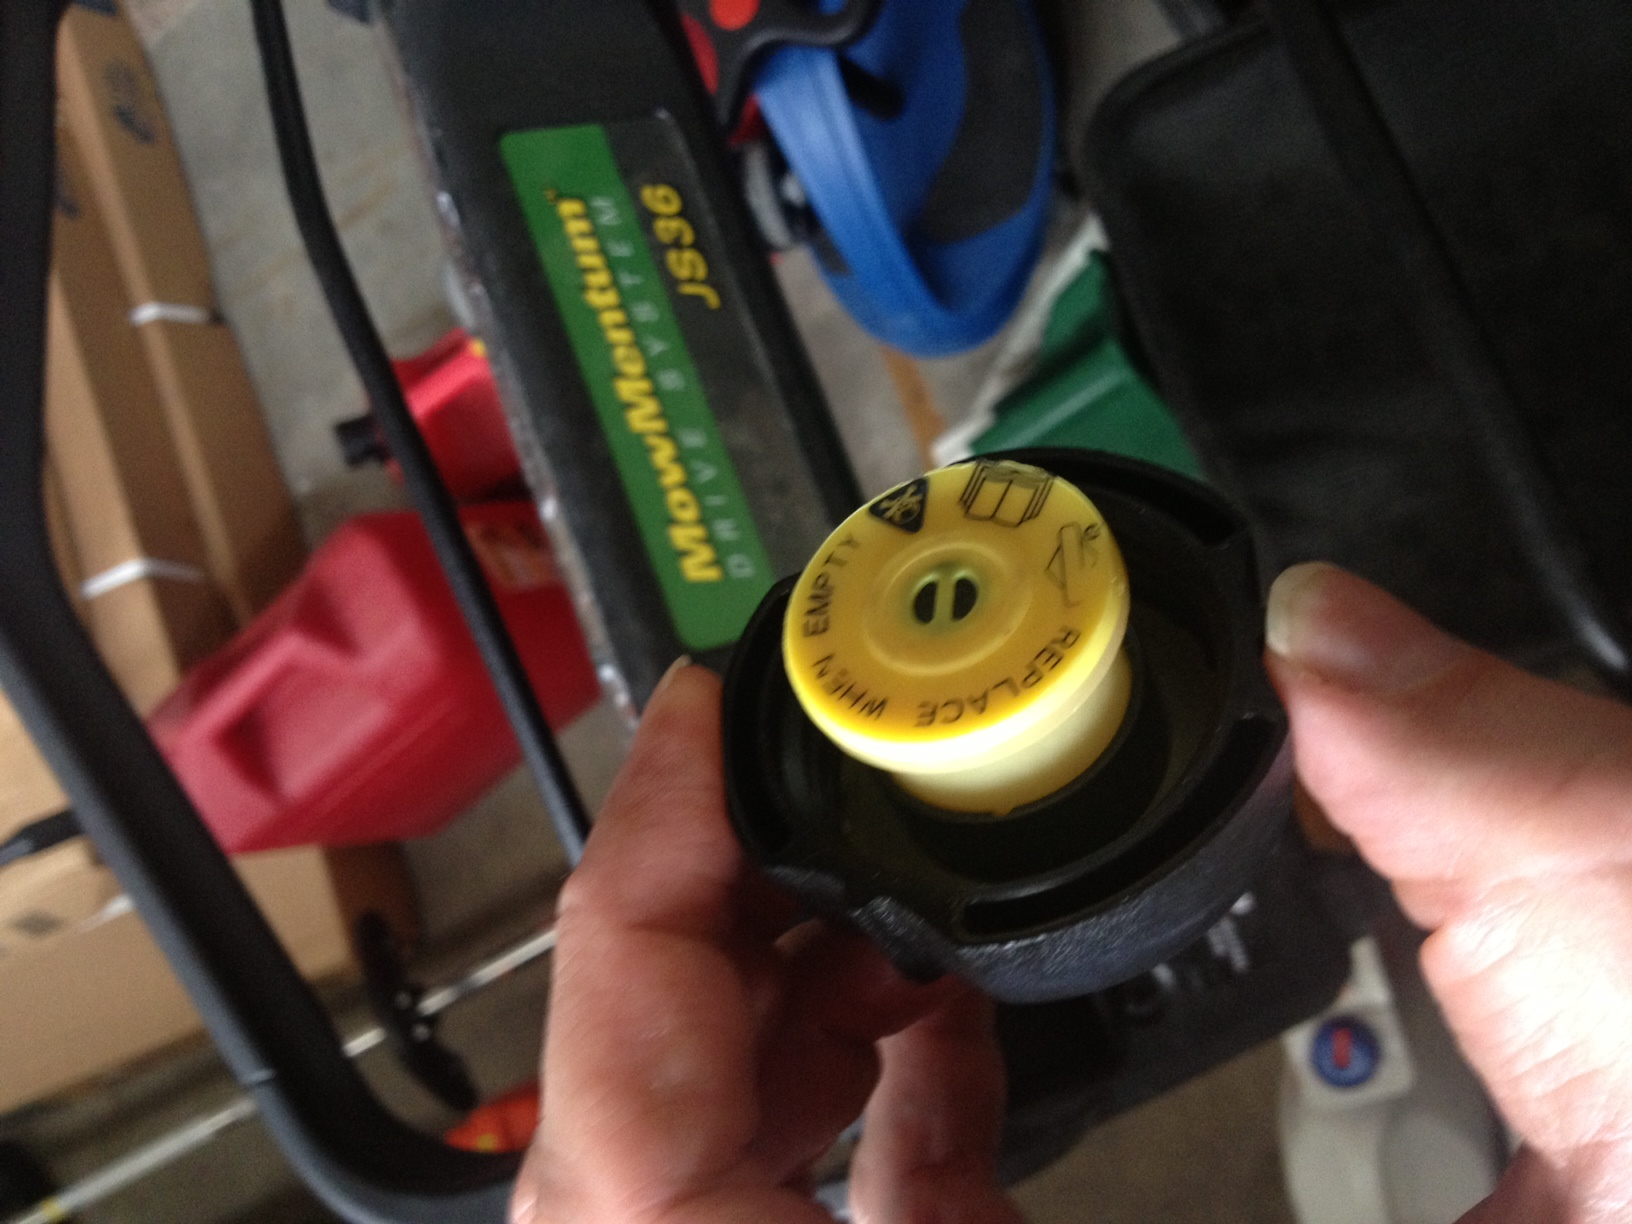 Dr Deere I have a JS36 push behind mower It came with a fuel